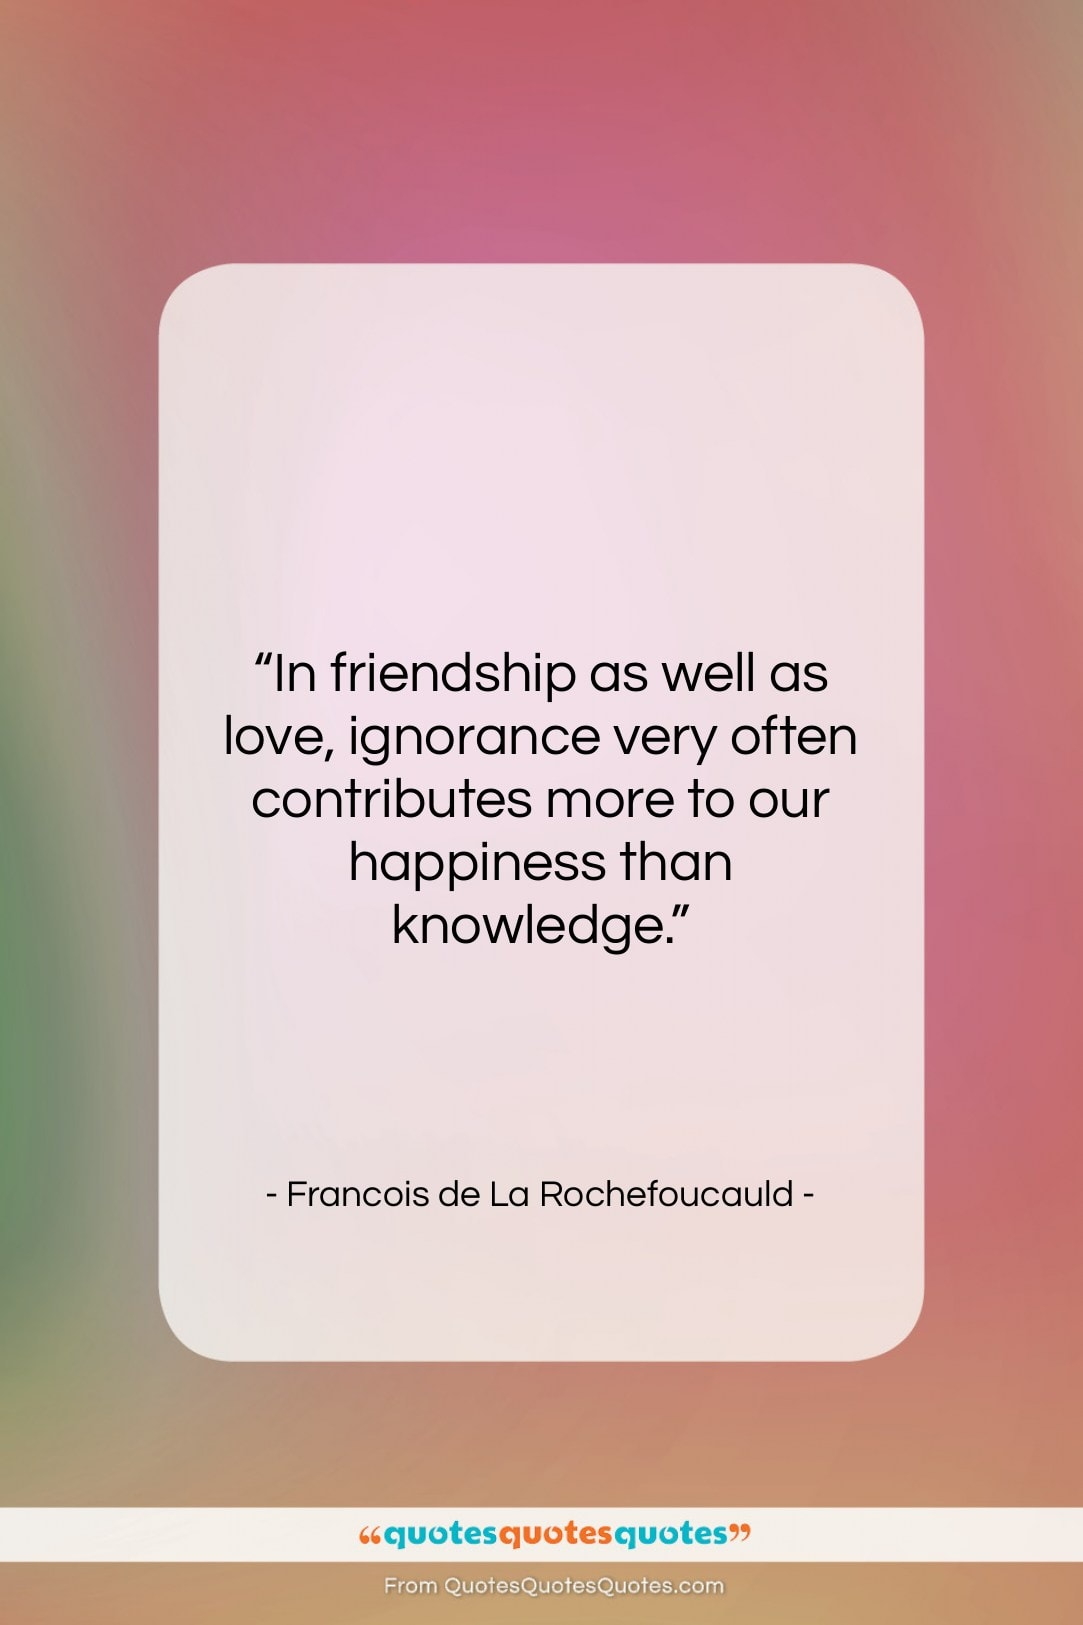 """Francois de La Rochefoucauld quote: """"In friendship as well as love, ignorance…""""- at QuotesQuotesQuotes.com"""